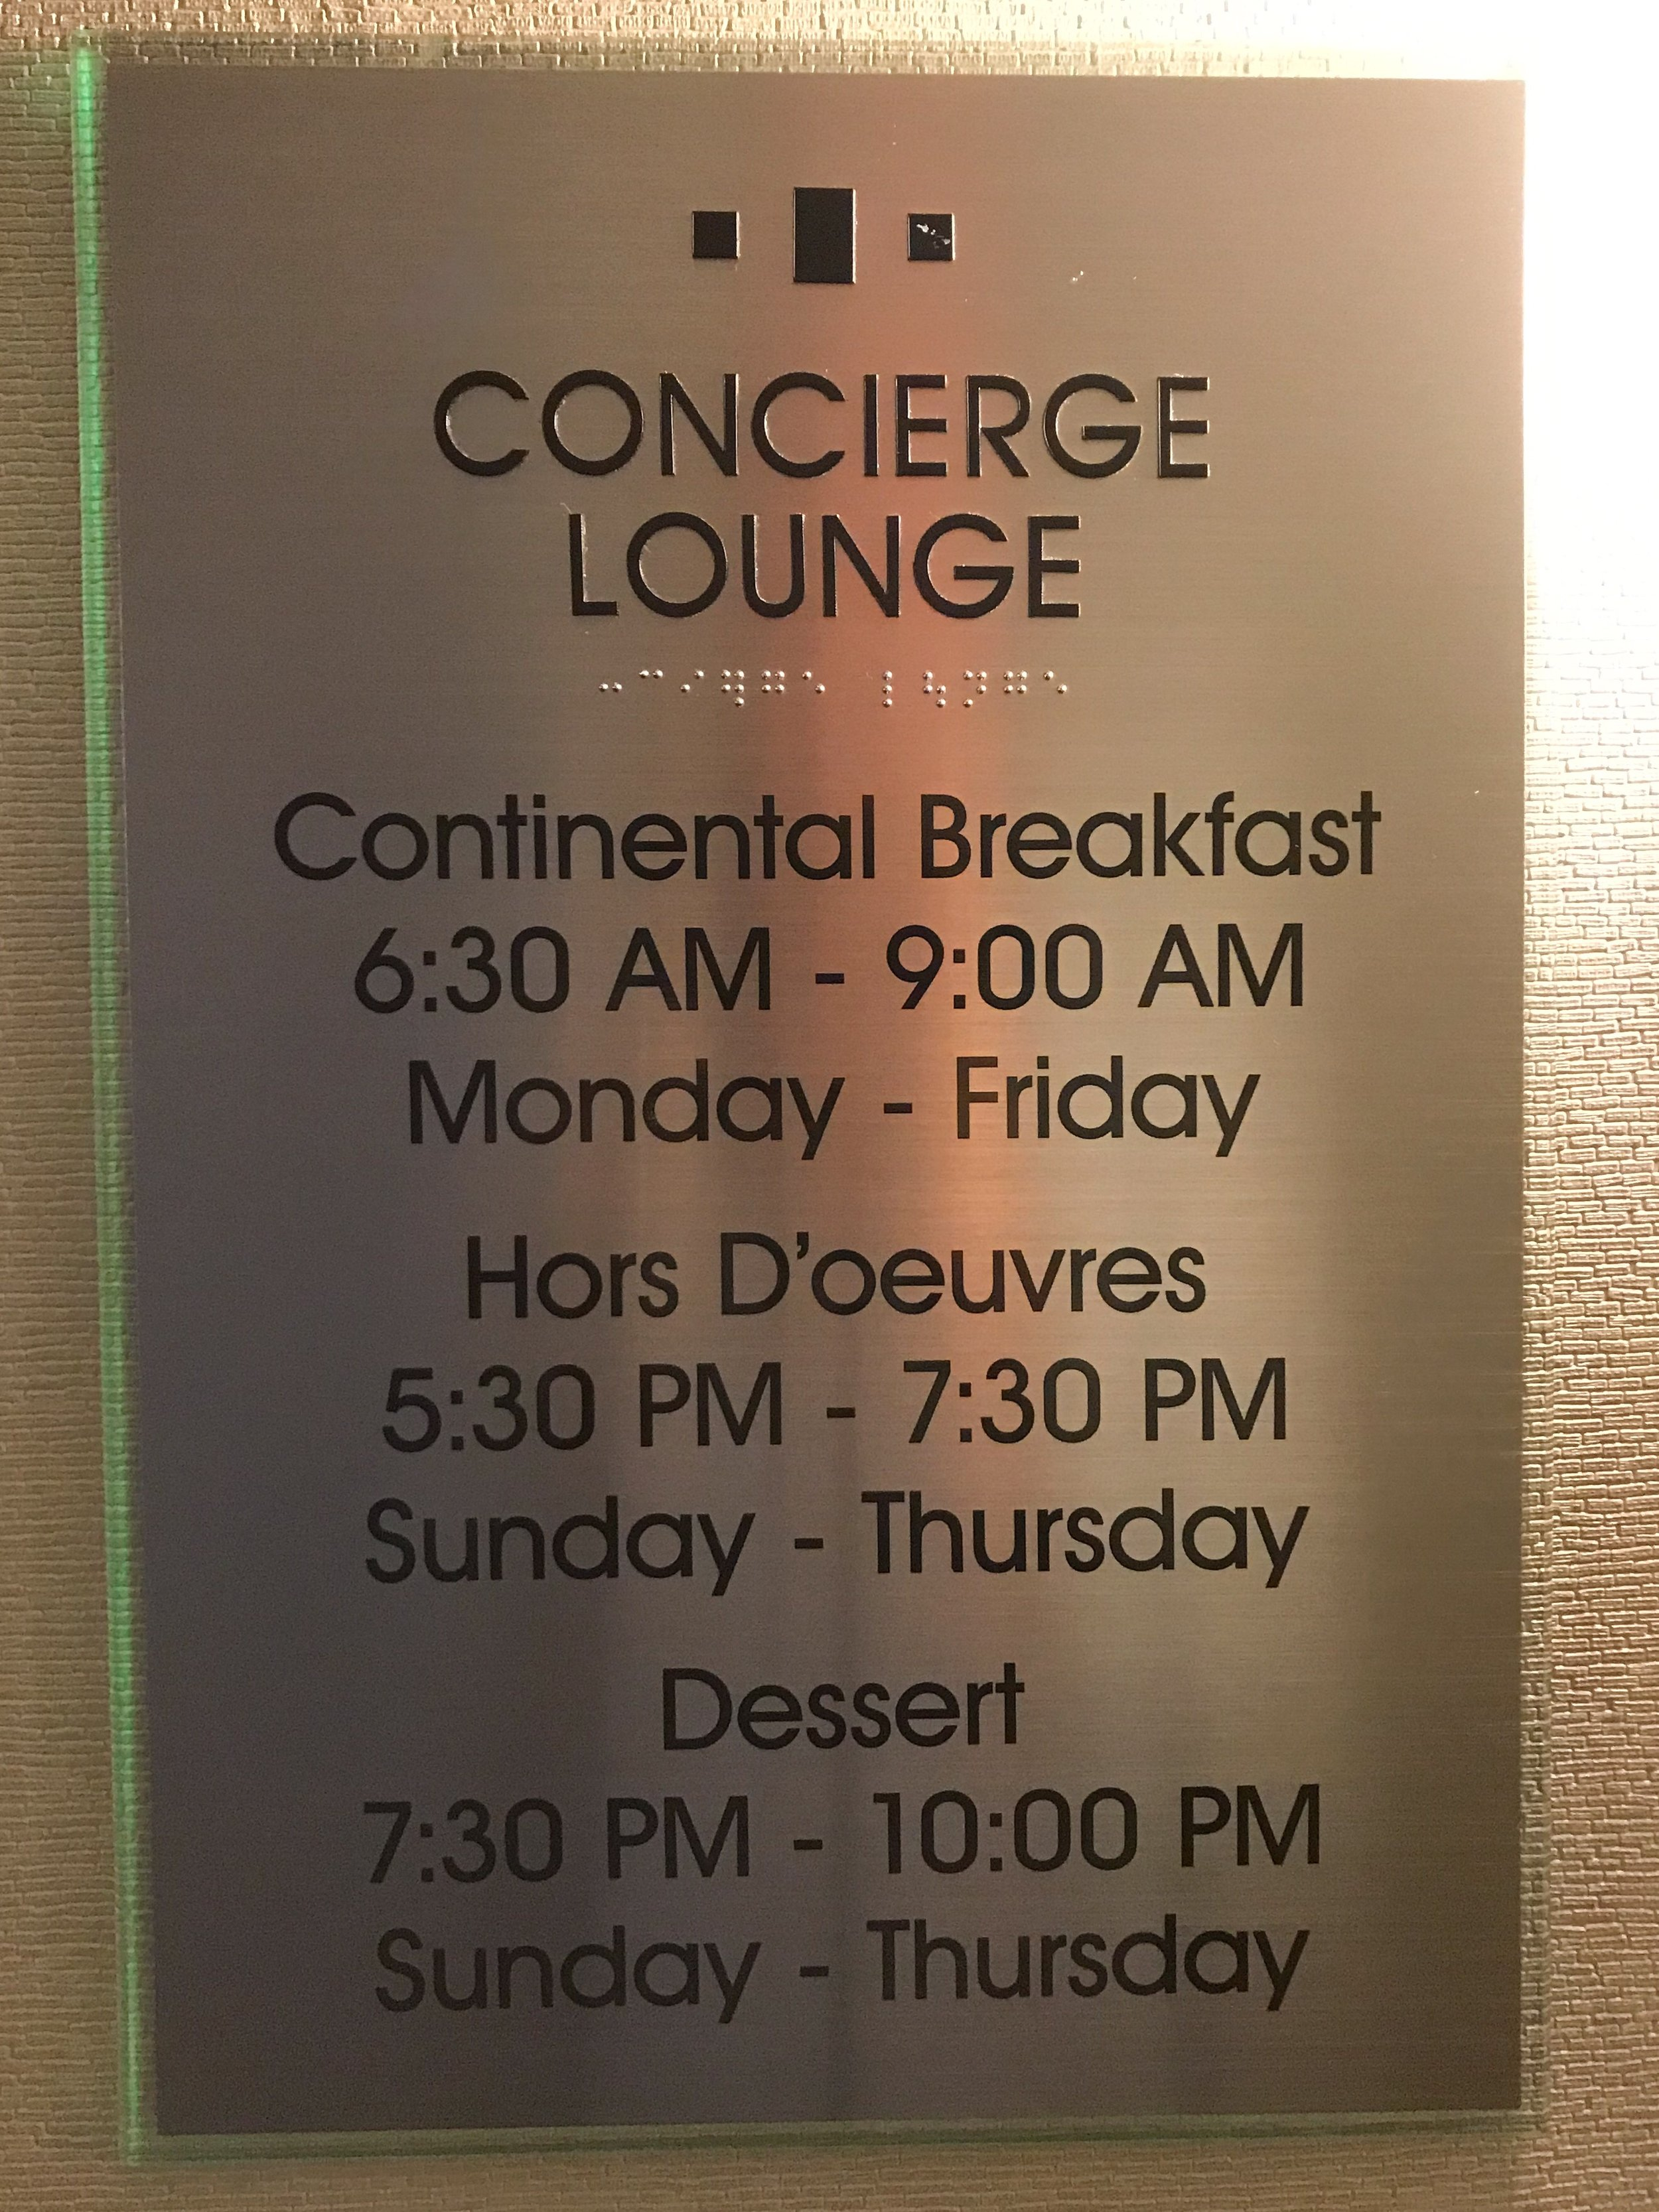 The Concierge Lounge was open for breakfast on weekdays and dessert from Sunday through Thursday evening.